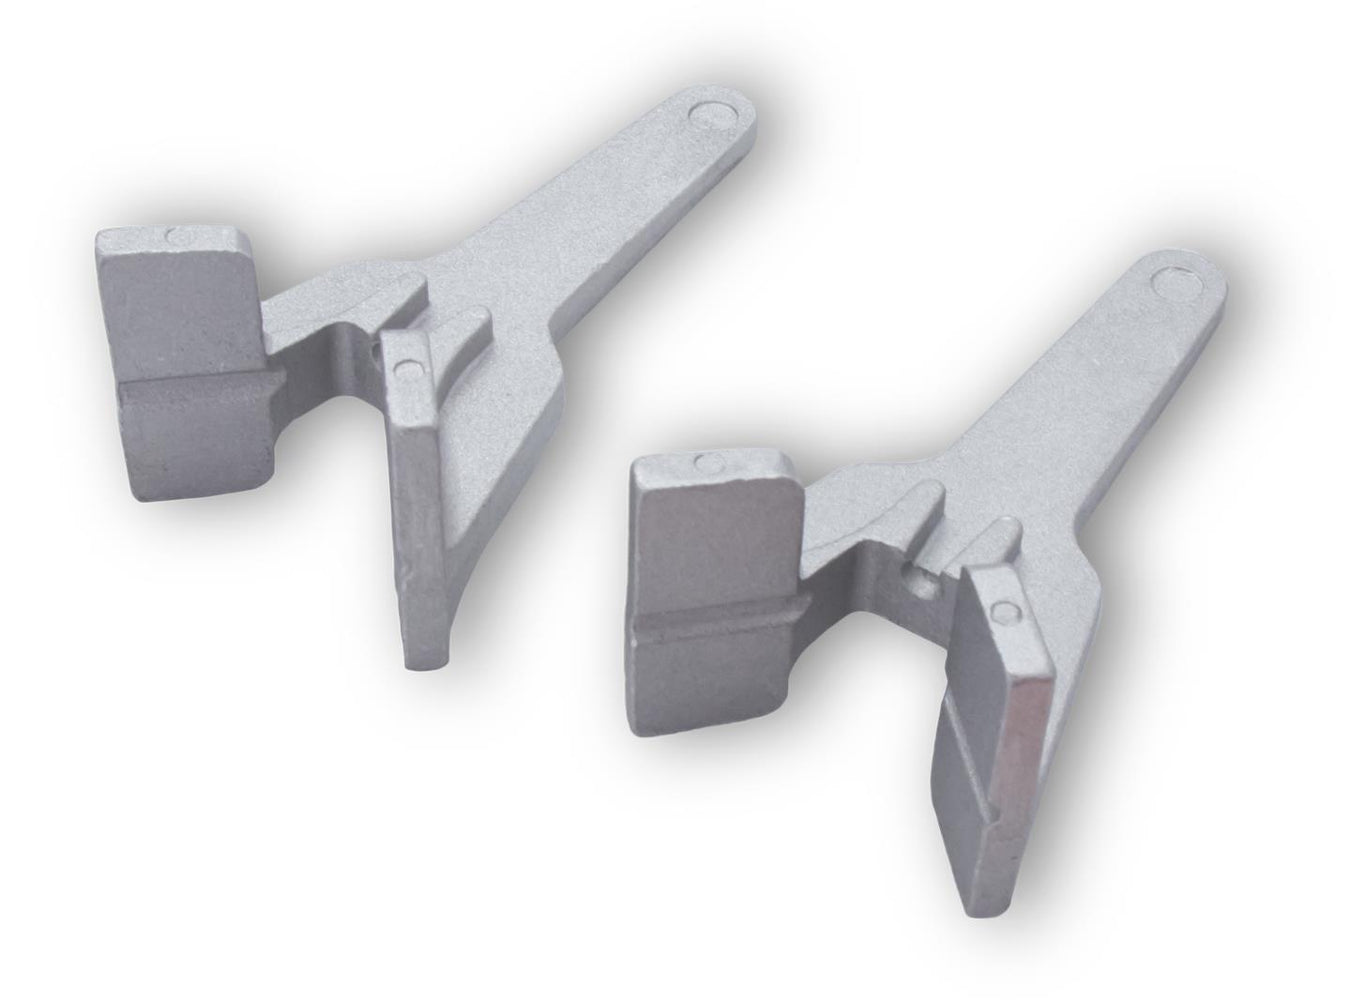 Aluminum Corner Blocks (Pair)-Marshalltown Tools-Atlas Preservation